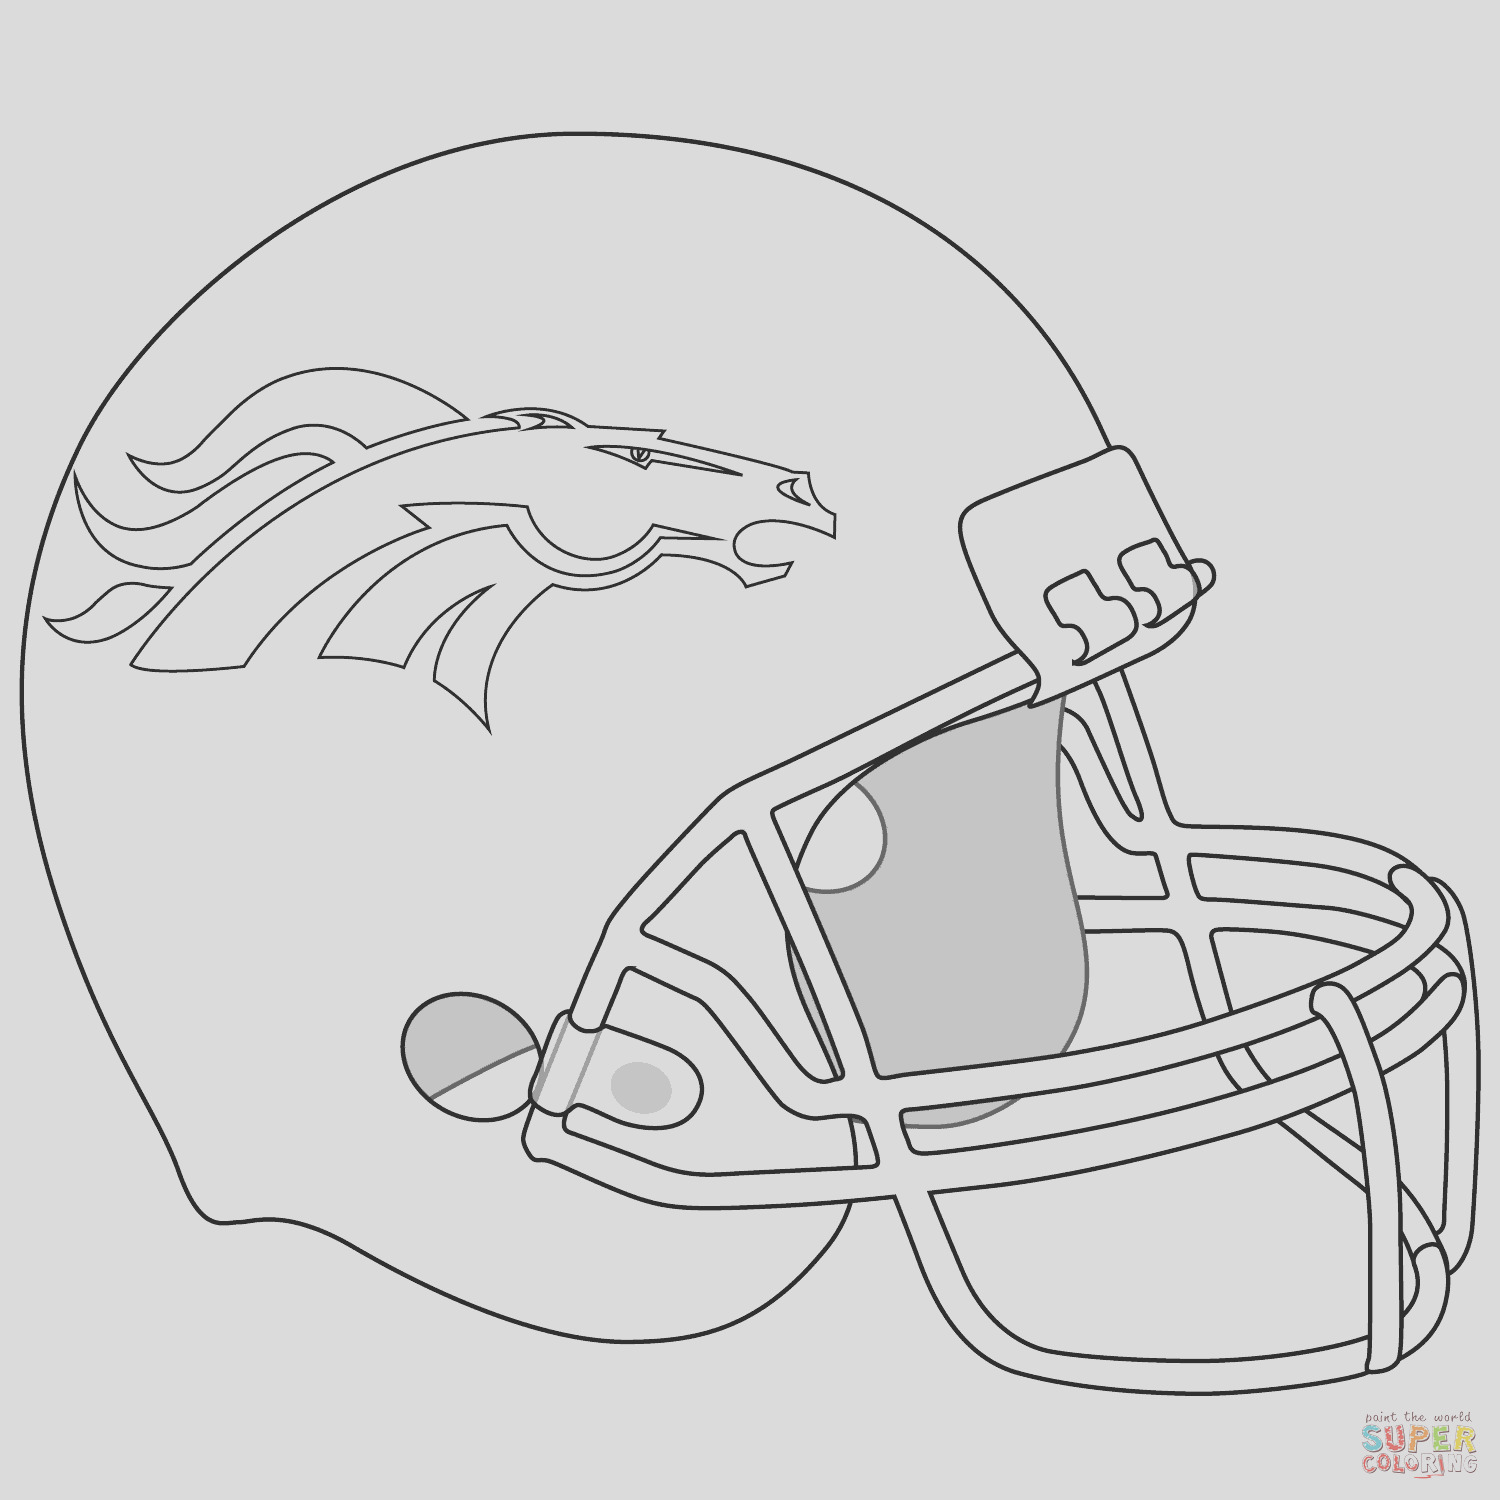 super bowl drawing